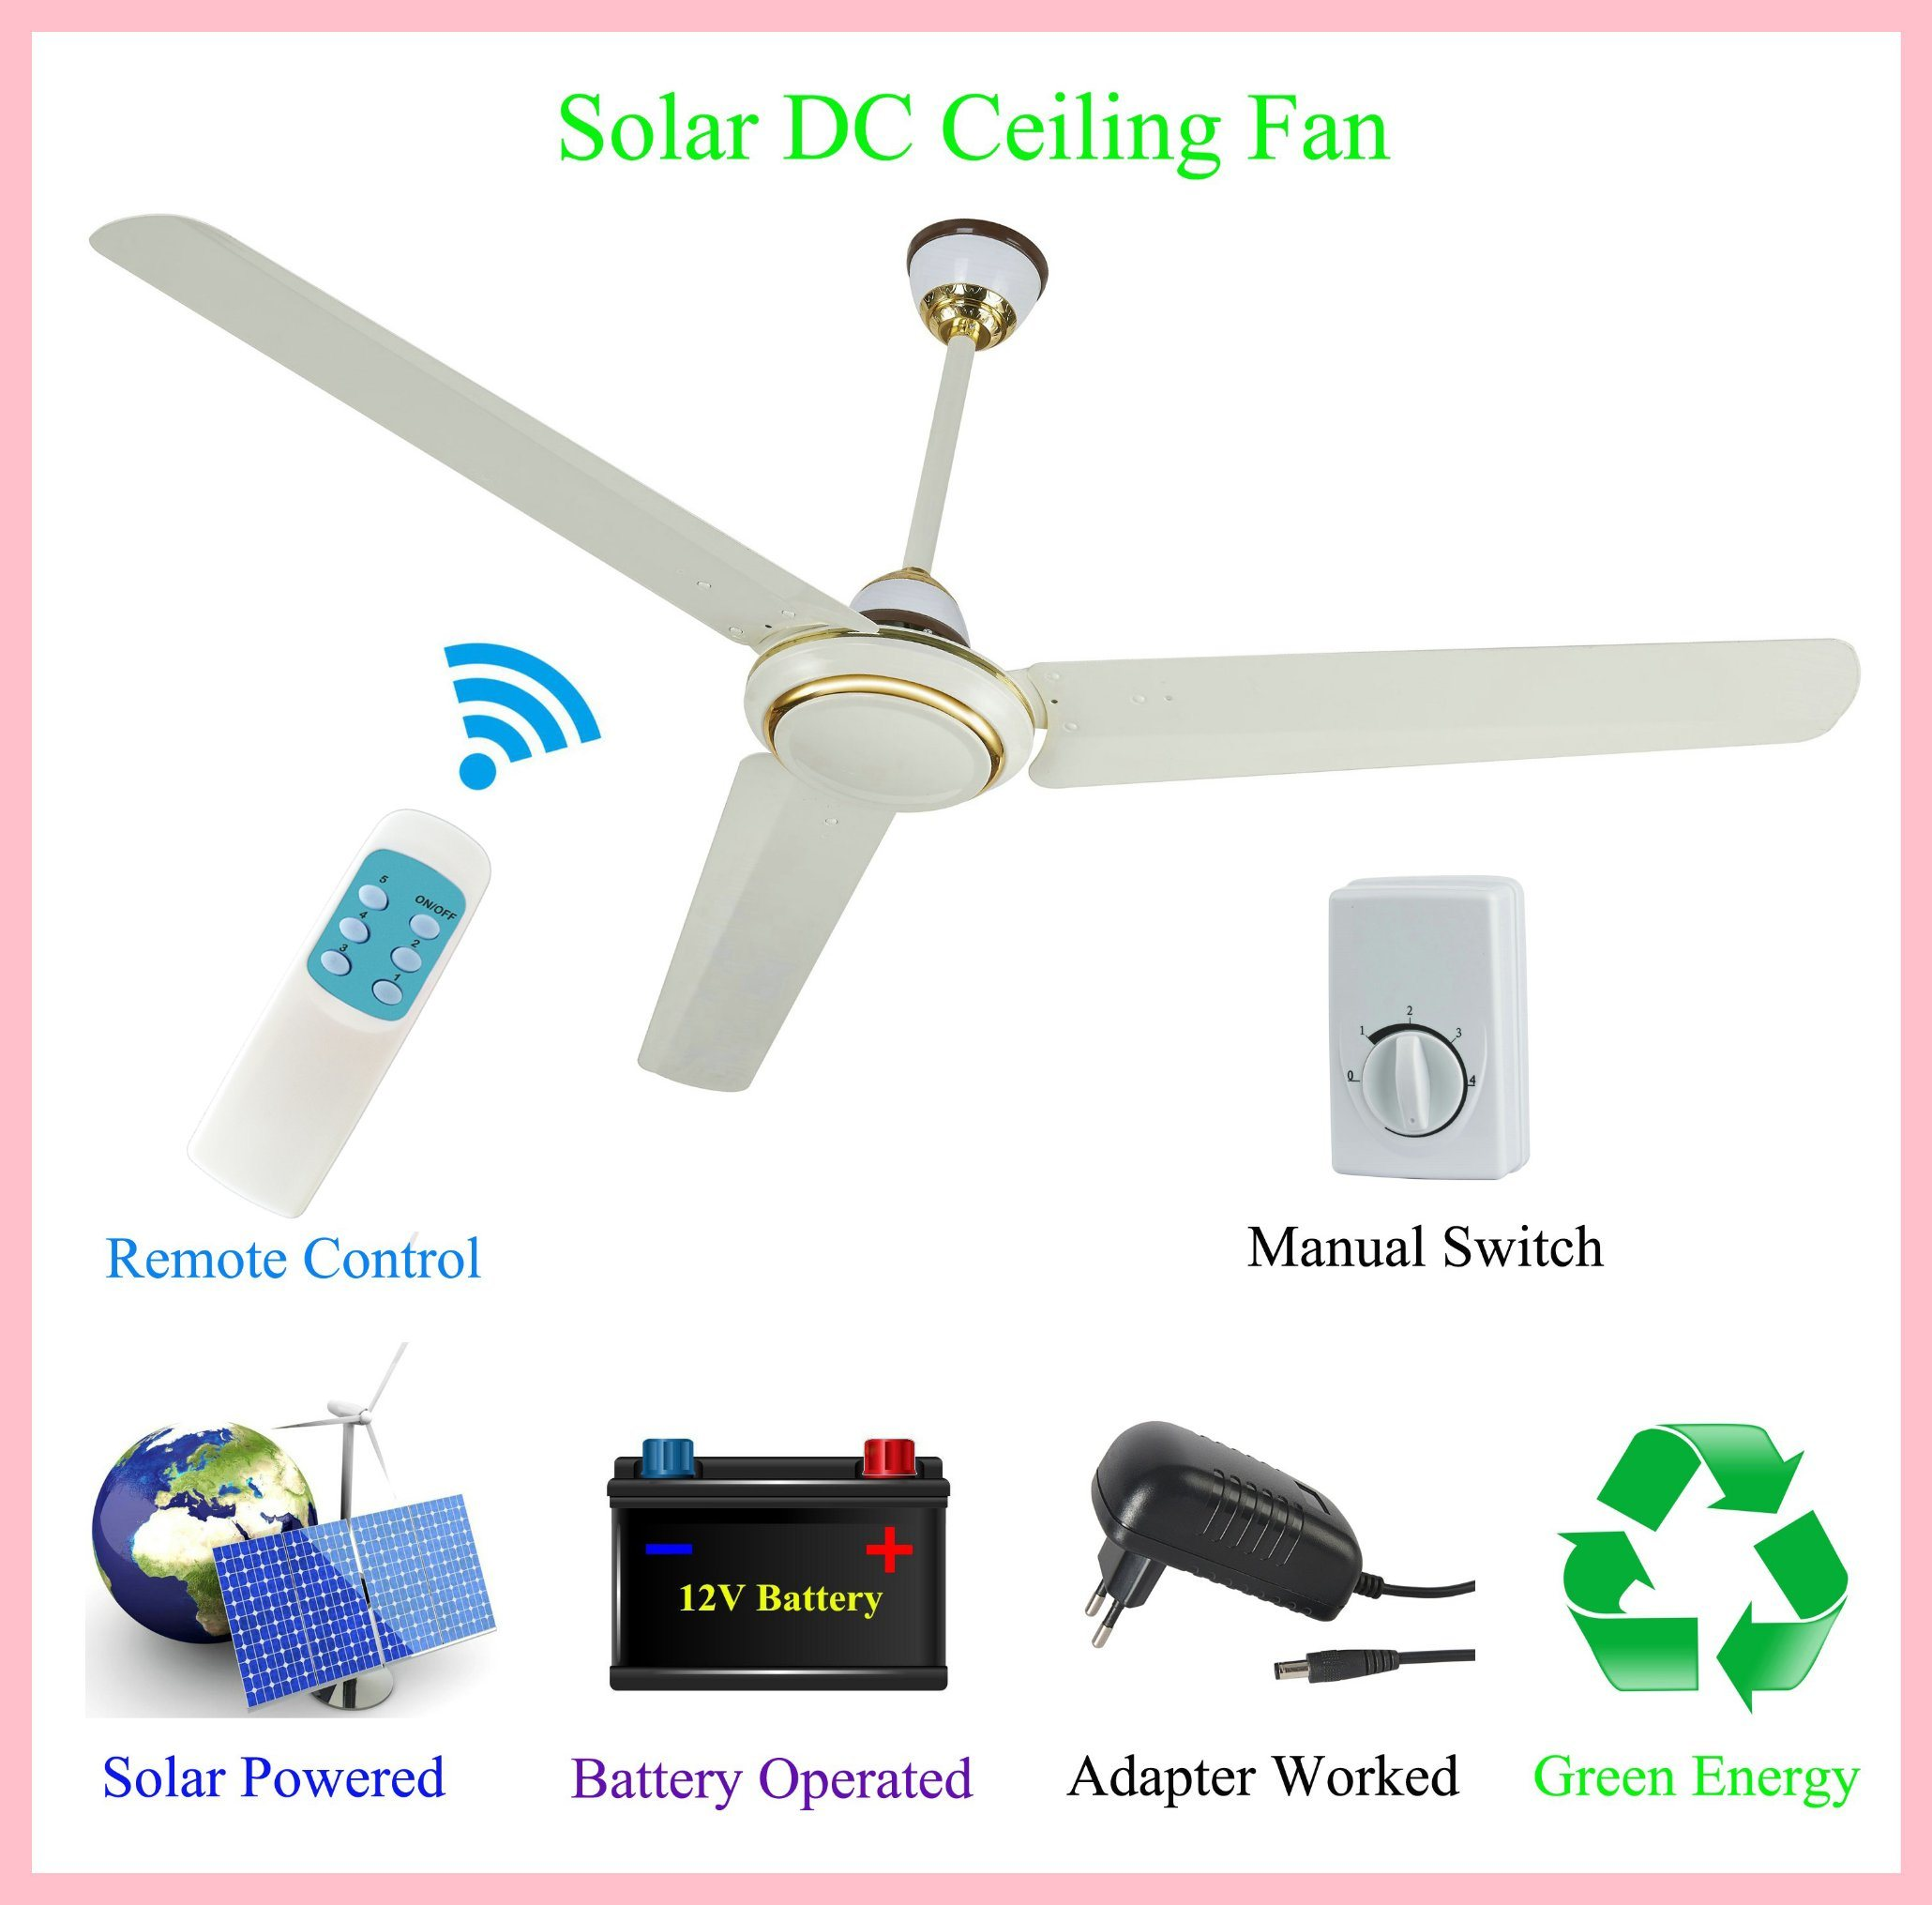 about verambelles images awesome ceiling fan powered battery